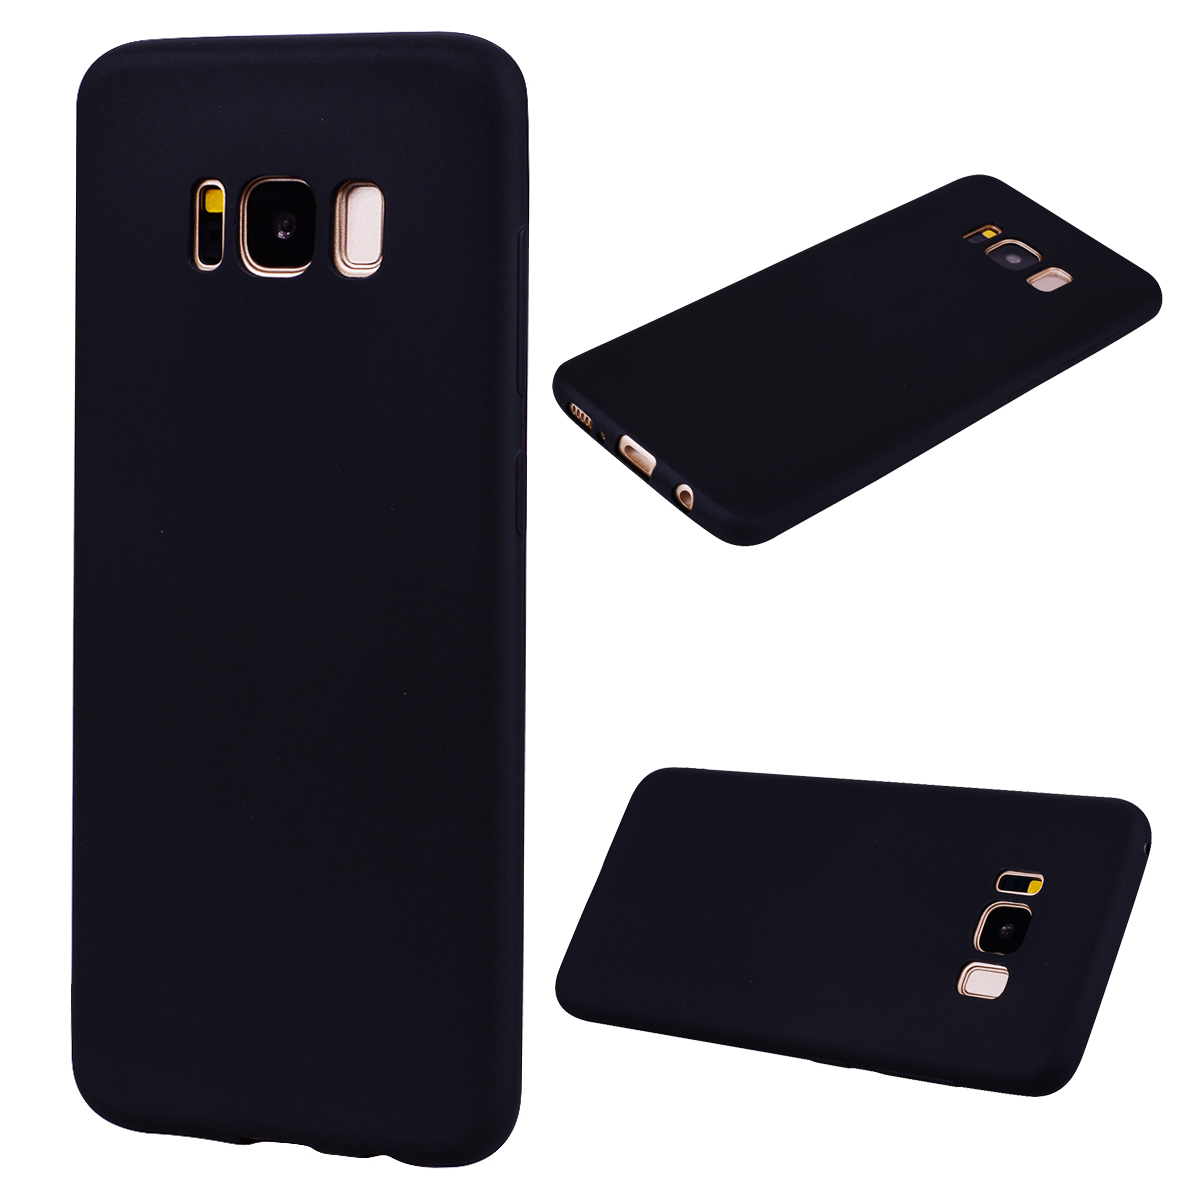 for Samsung S8 plus Lovely Candy Color Matte TPU Anti-scratch Non-slip Protective Cover Back Case black